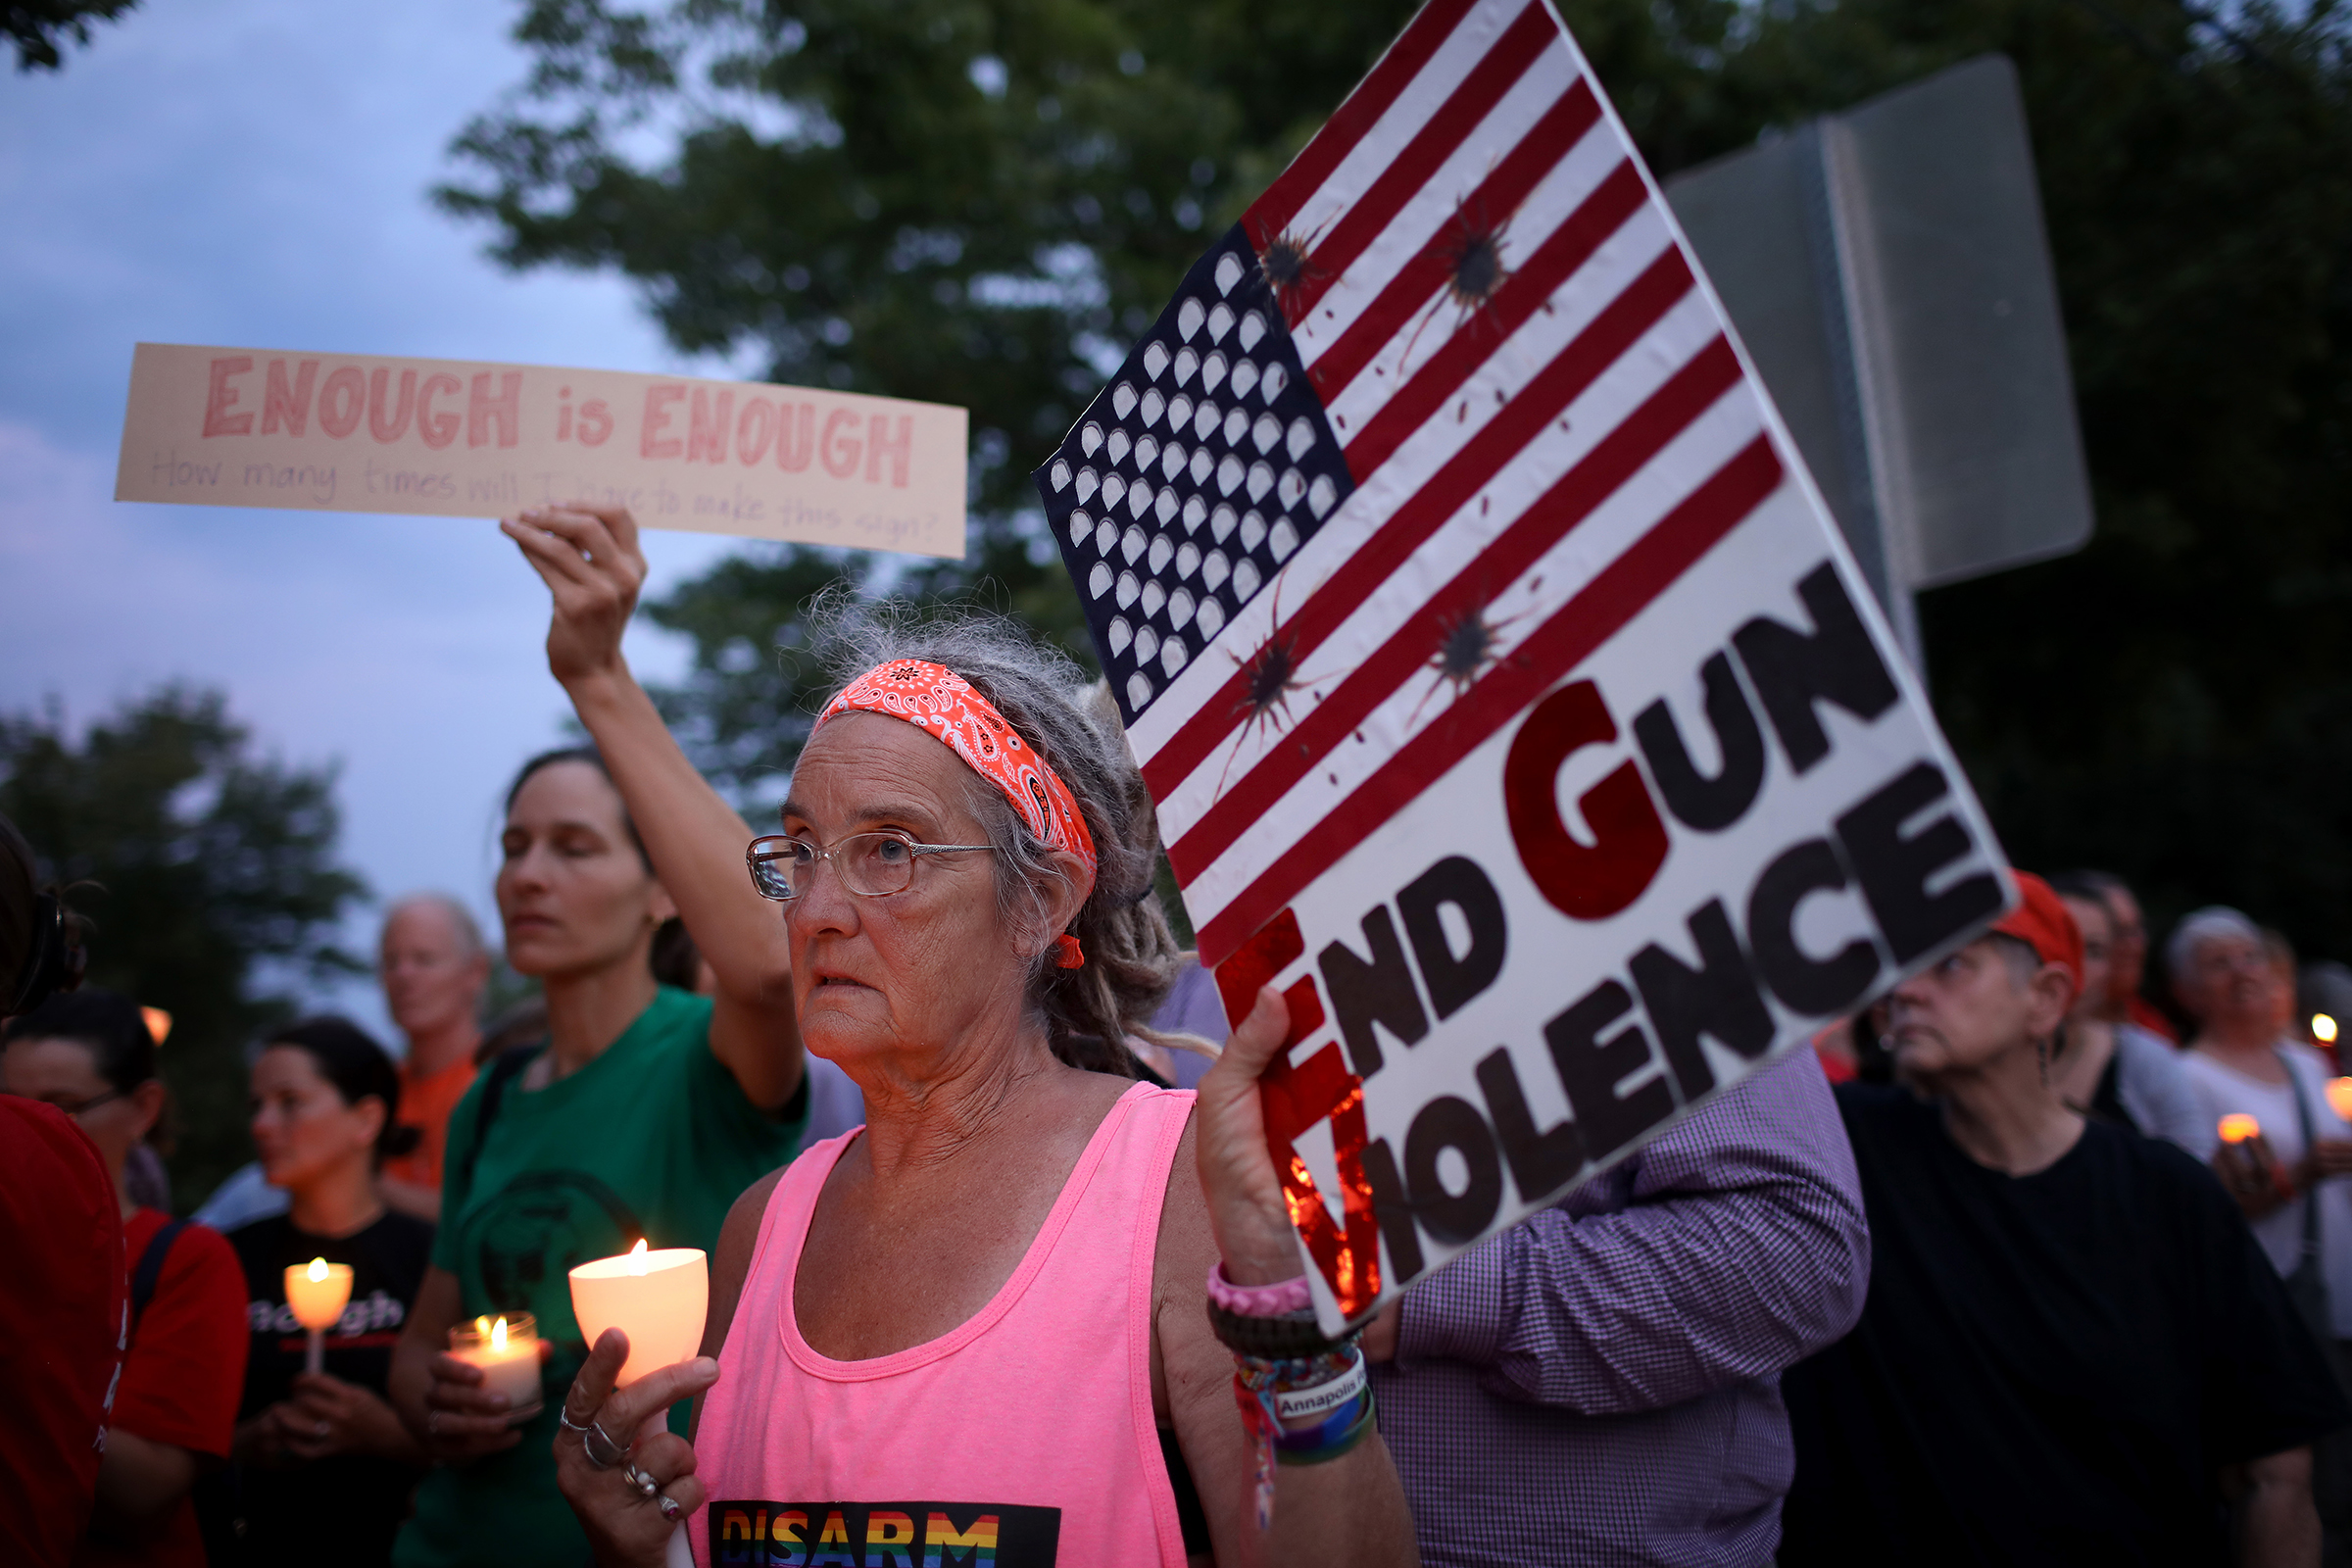 gun safety problems helped Democrats flip Virginia General Assembly in 2019. Next is Texas?